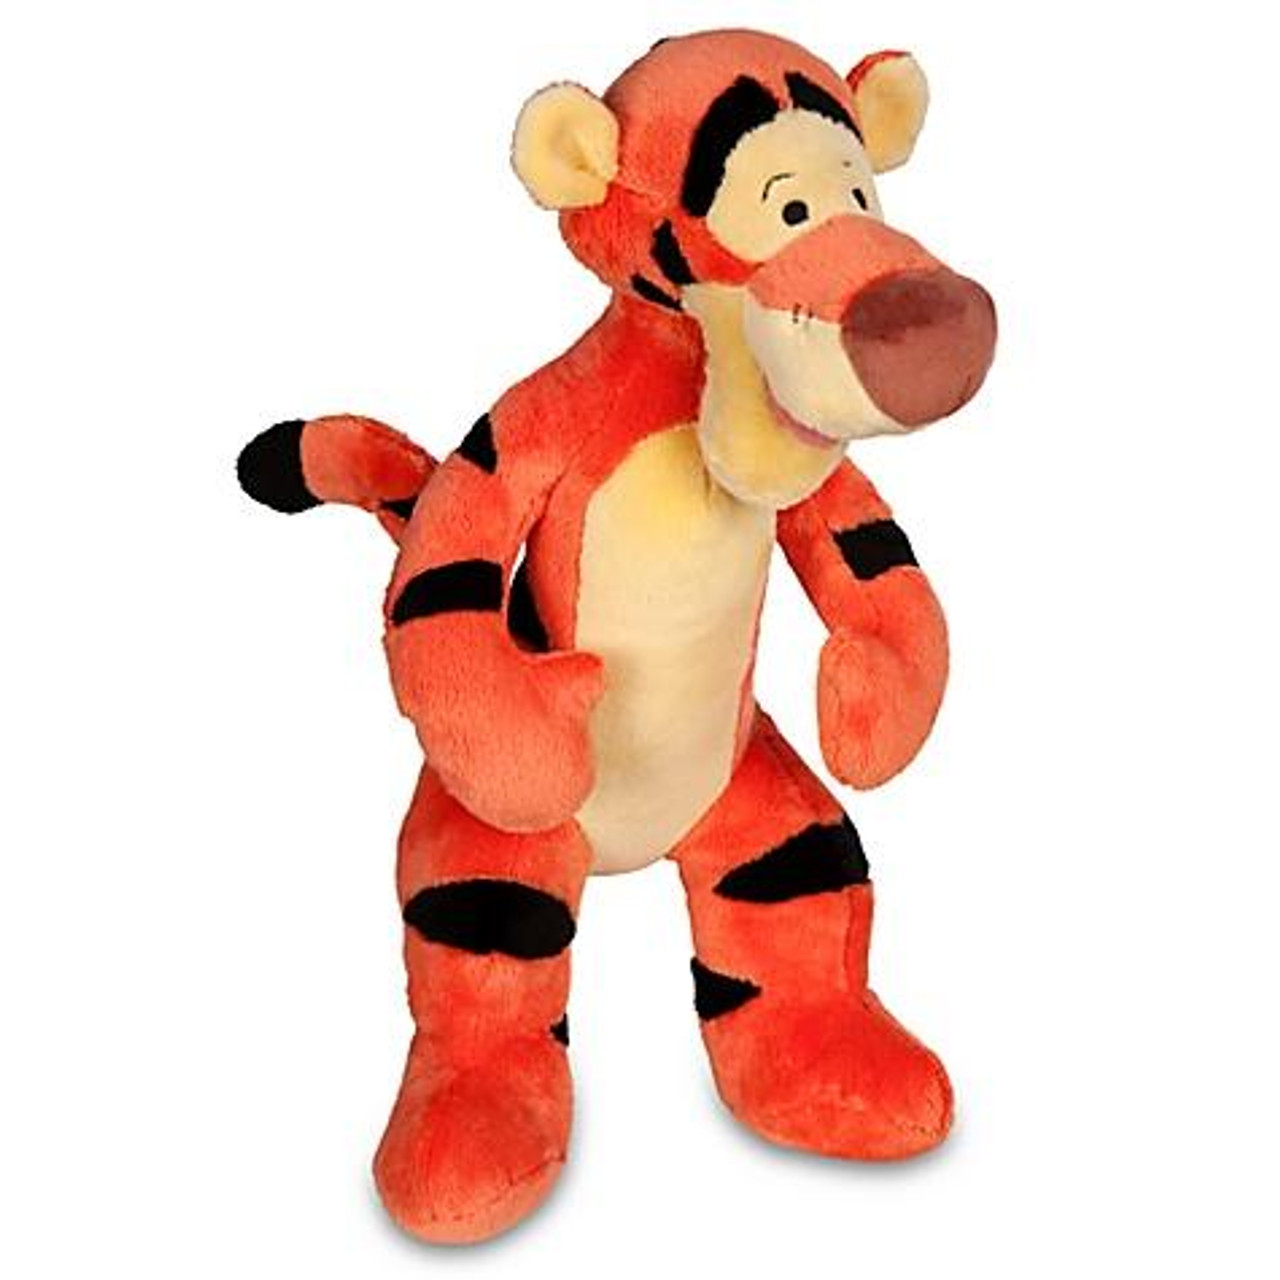 Disney Winnie the Pooh Tigger Exclusive 16-Inch Plush